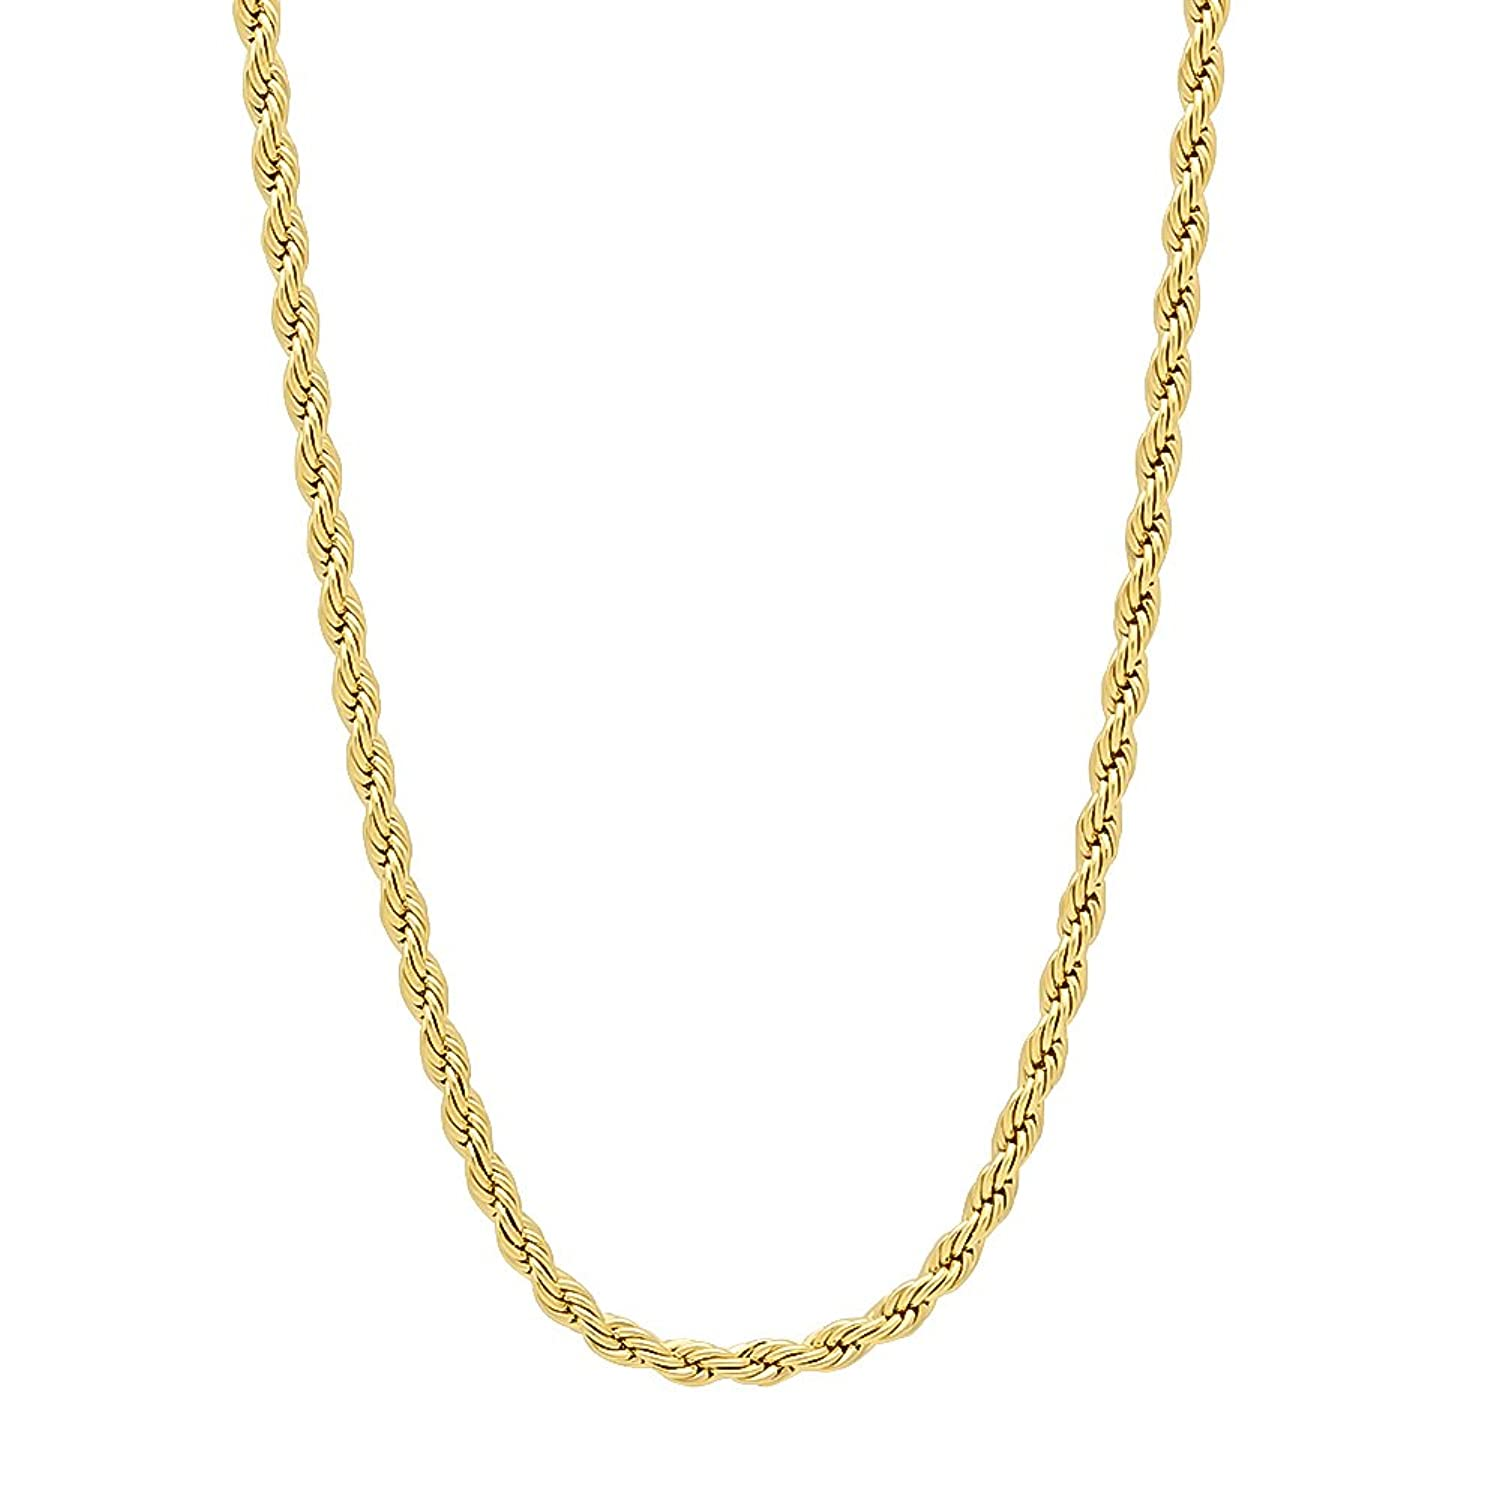 14k Gold Plated or Rhodium Plated Rope Chain or Bracelet - Your Choice of Color -> Width -> Length